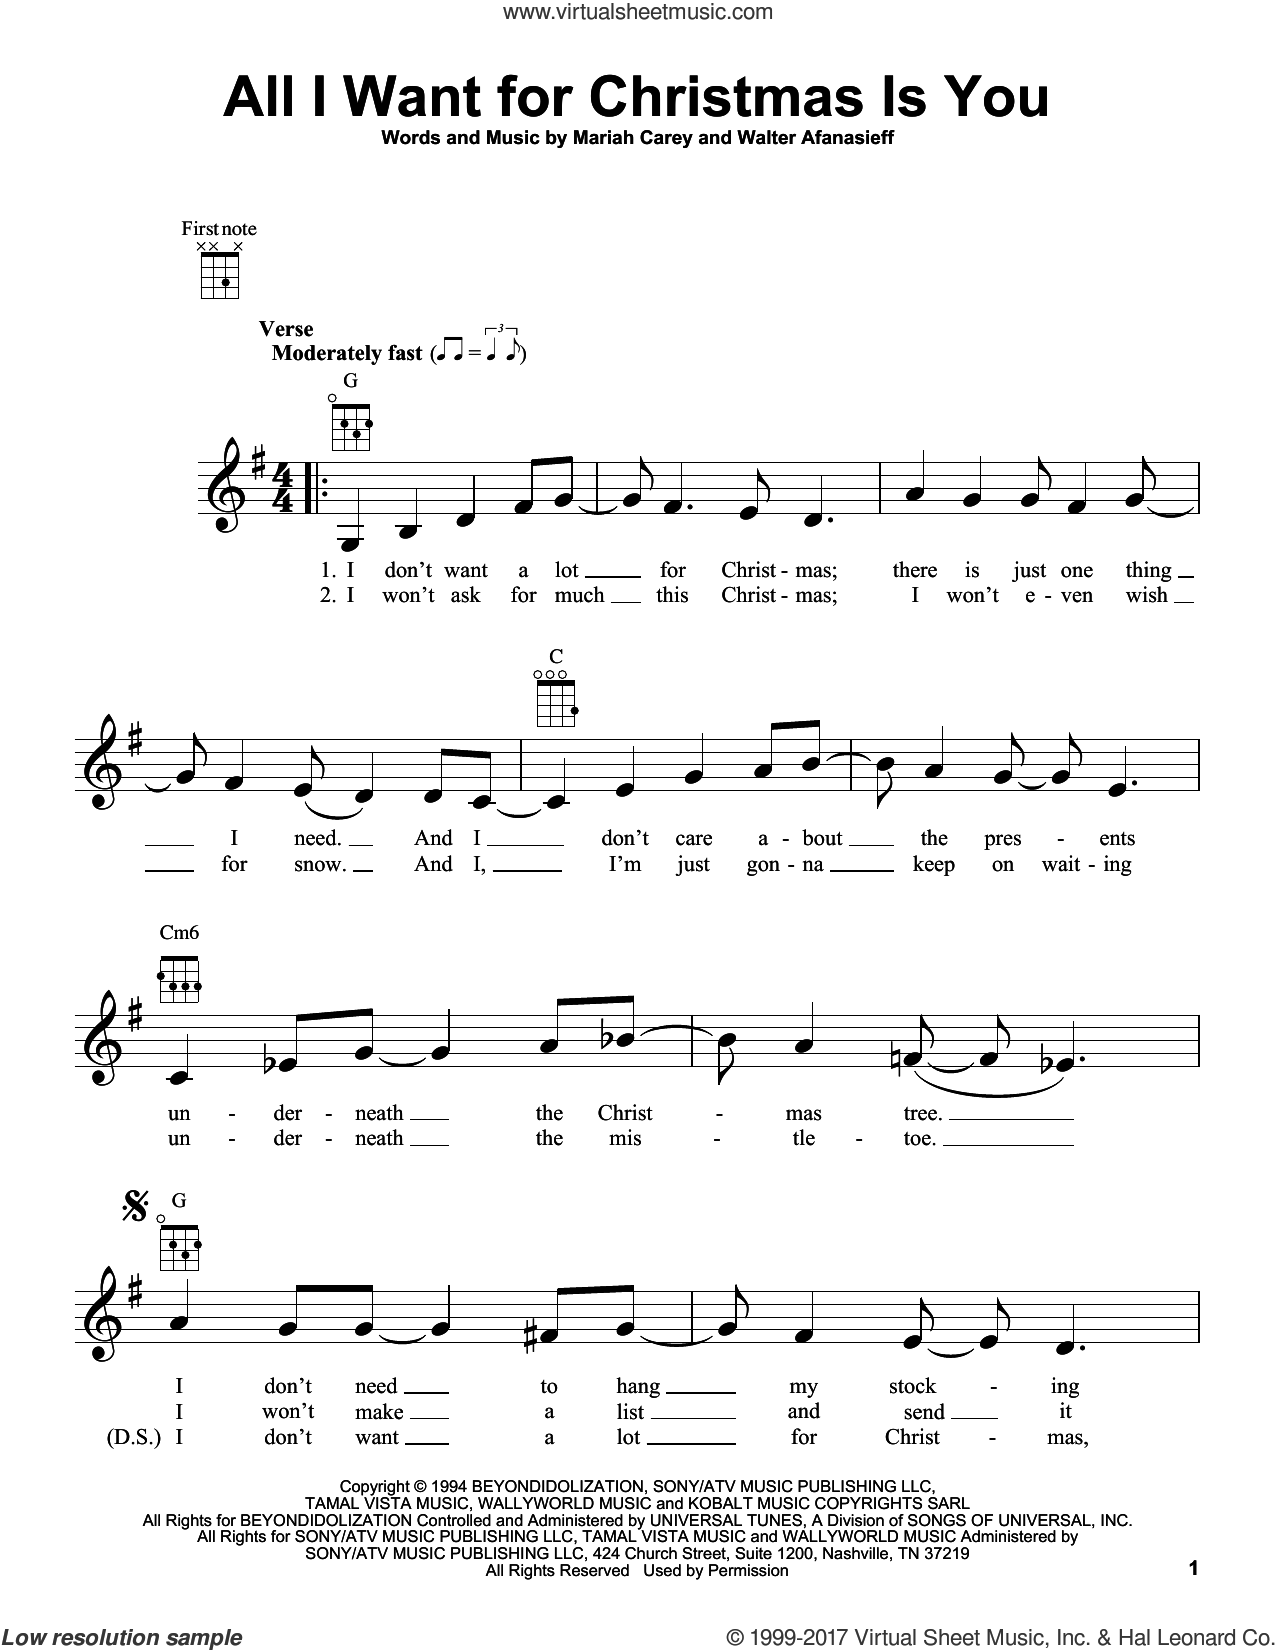 All I Want For Christmas Is You sheet music for ukulele by Mariah Carey and Walter Afanasieff, intermediate skill level